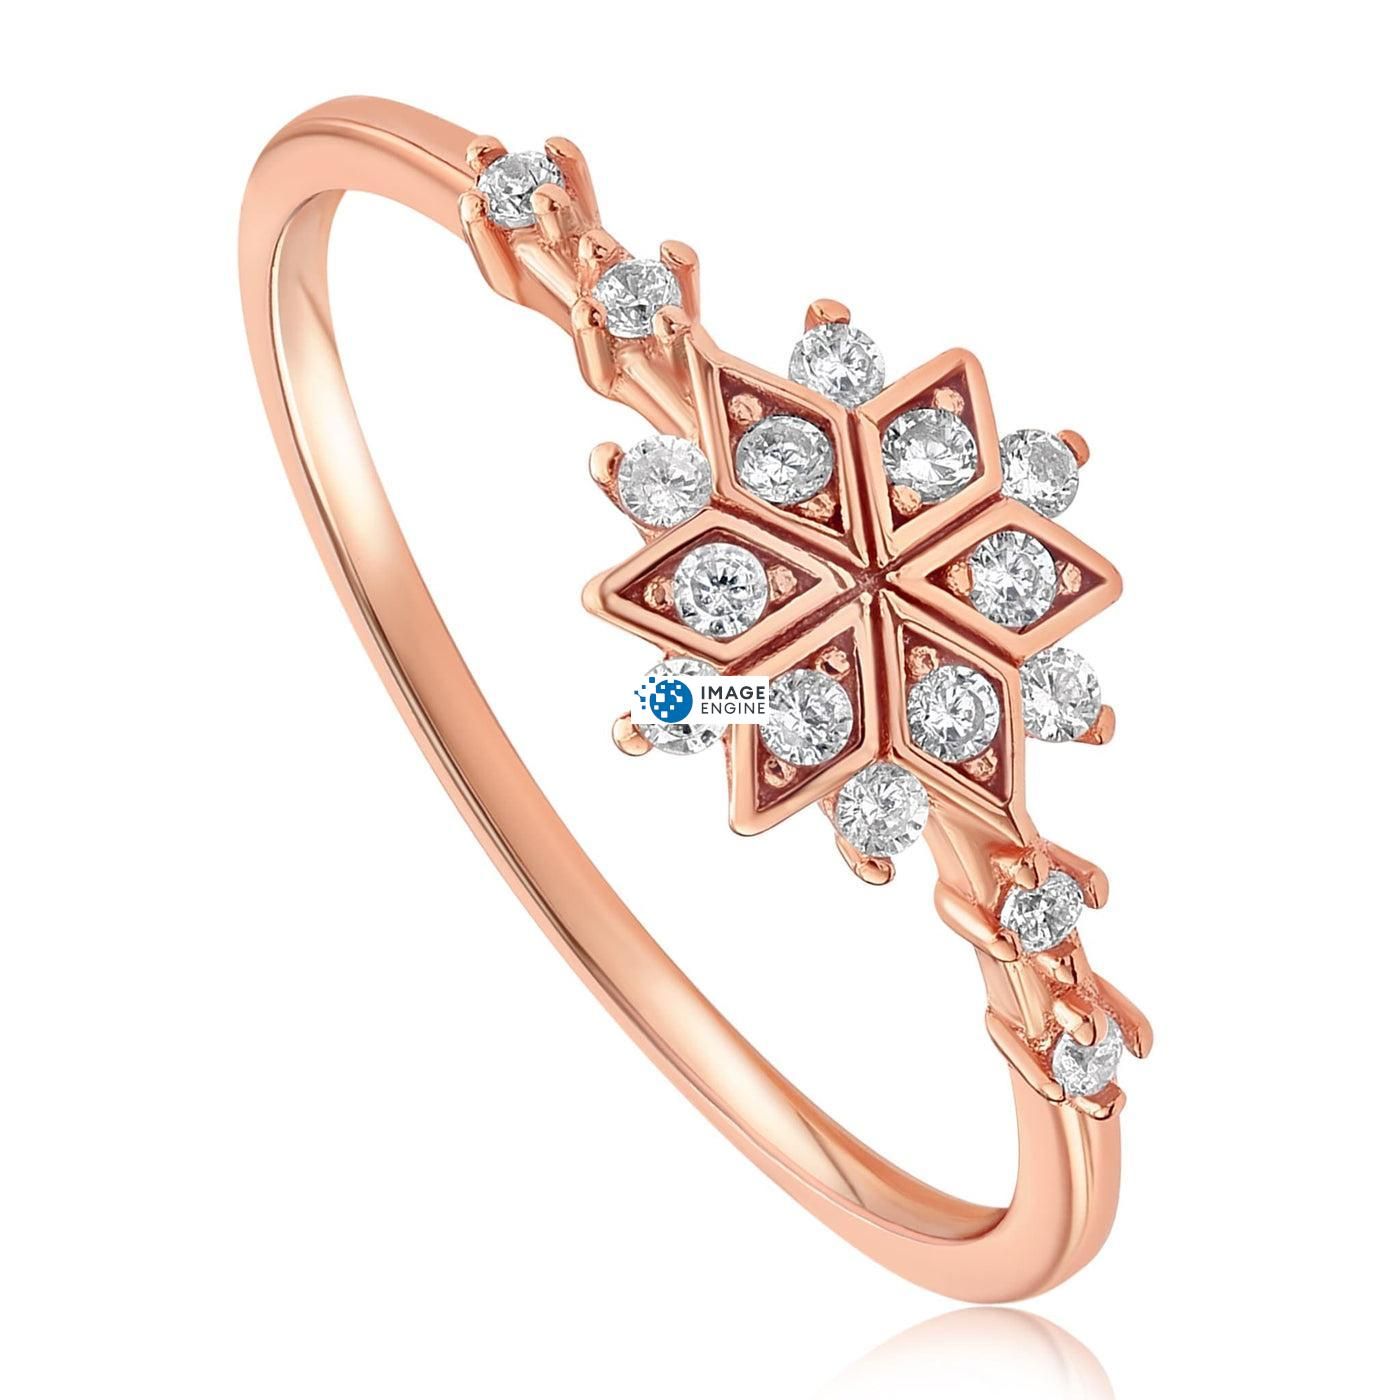 Sophia Snowflake Ring - Three Quarter View - 18K Rose Gold Vermeil